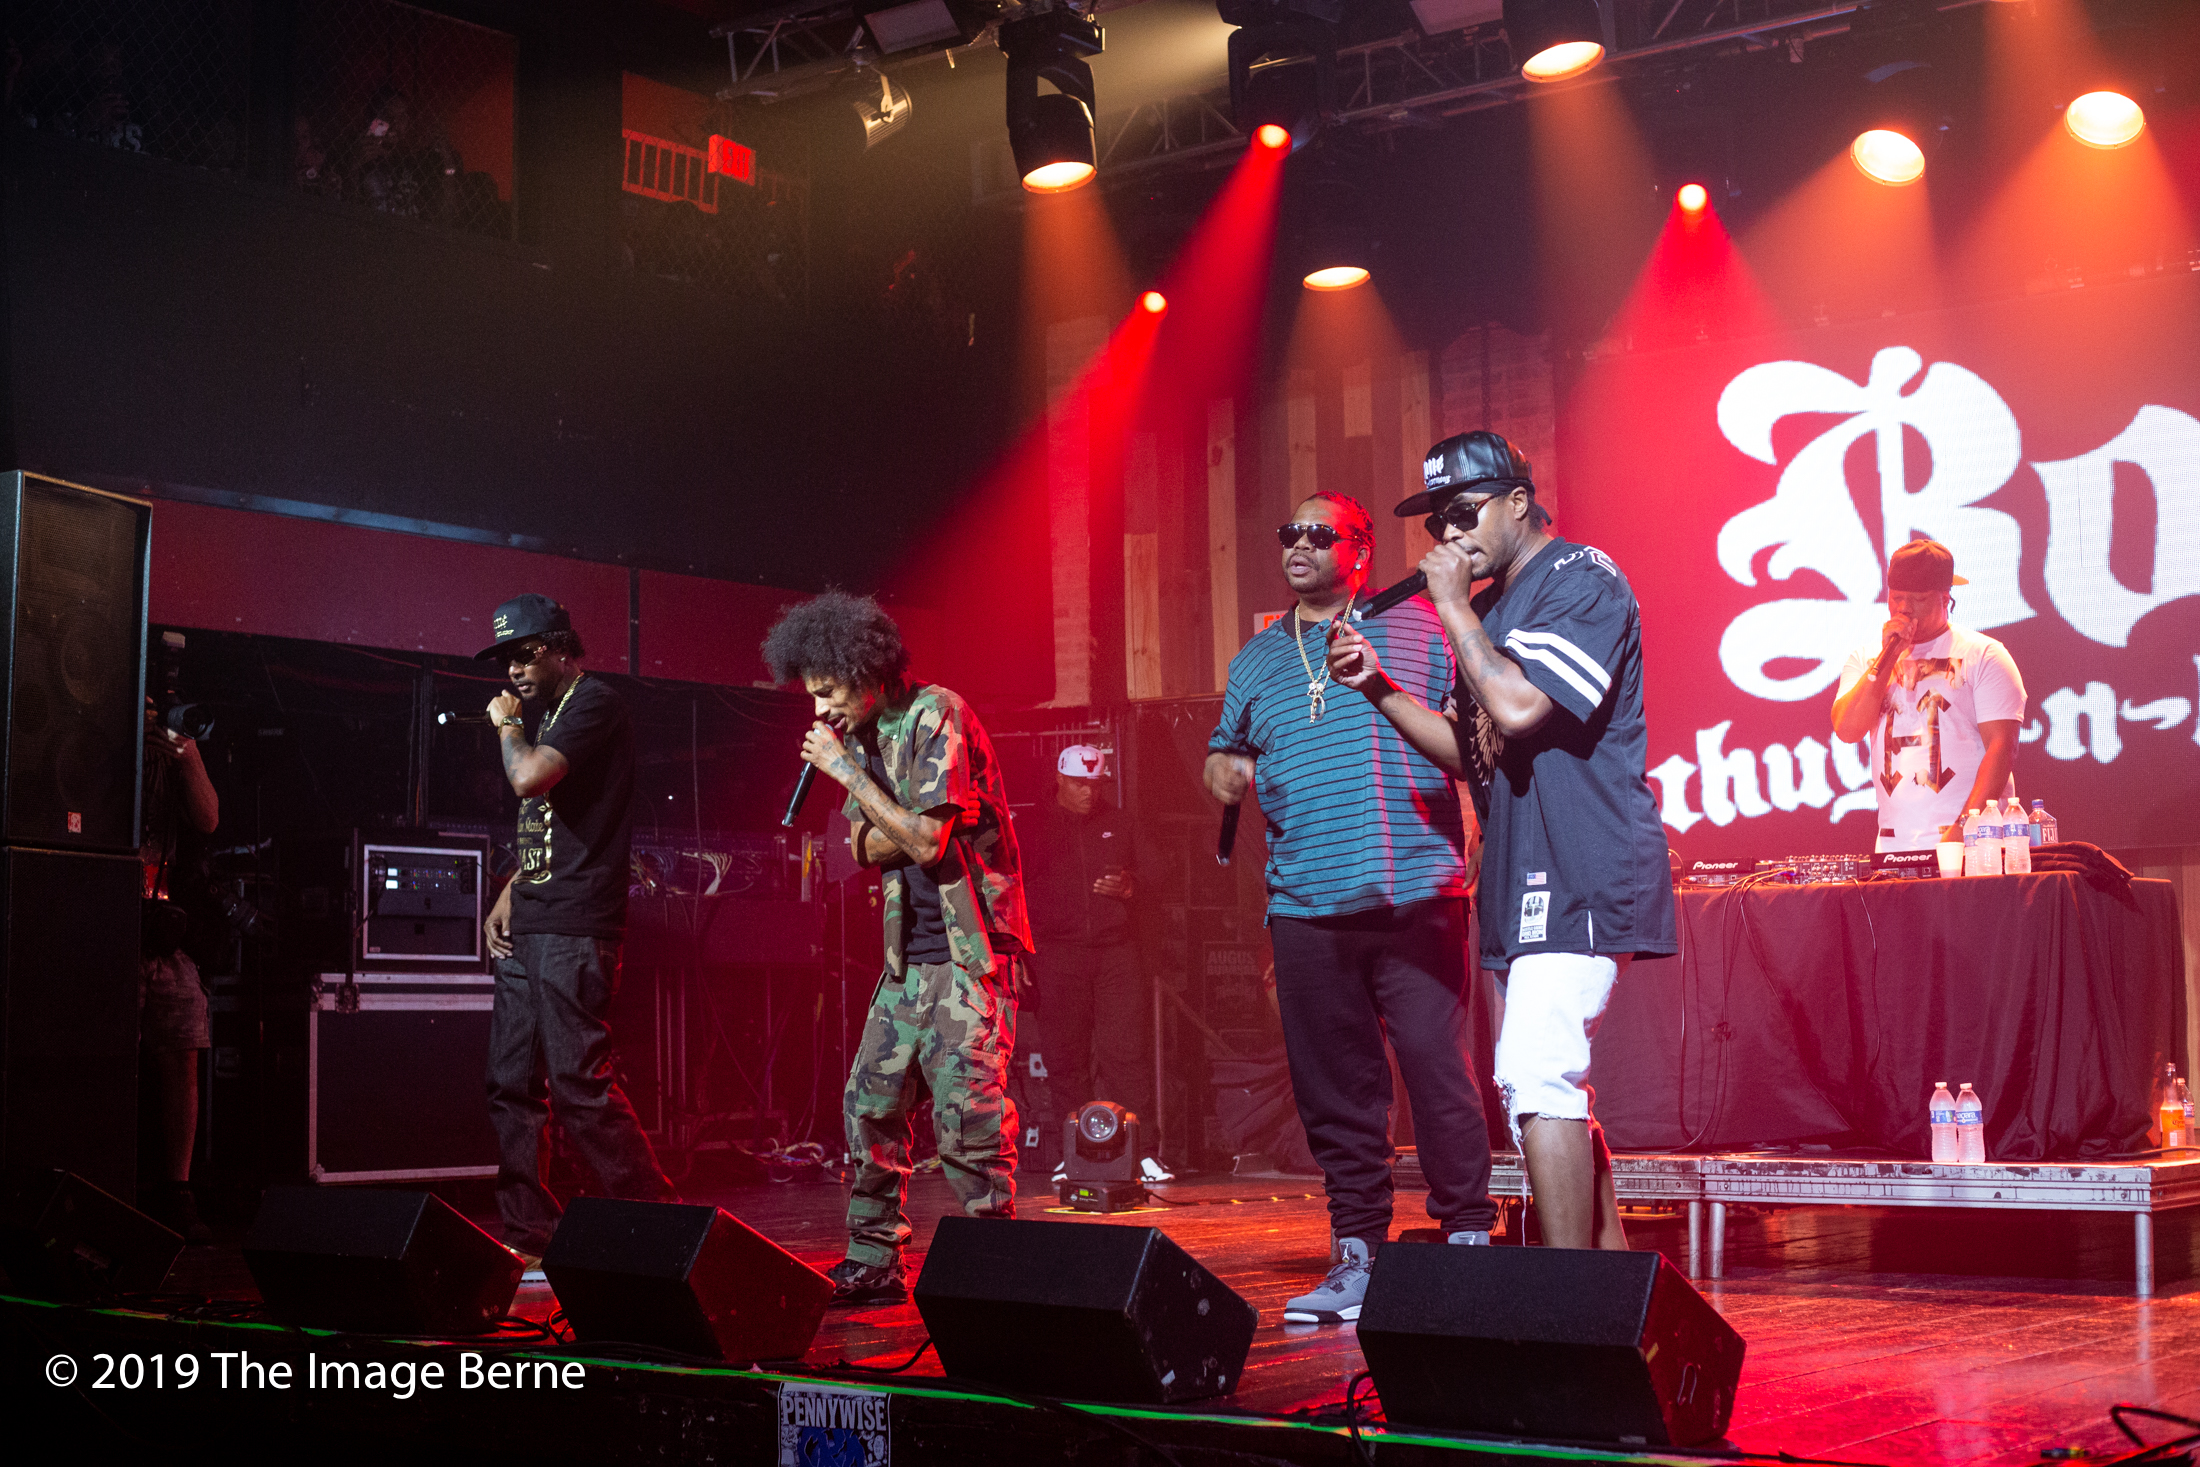 Krayzie Bone, Wish Bone, Flesh-N-Bone, Layzie Bone, and Bizzy Bone-076.jpg